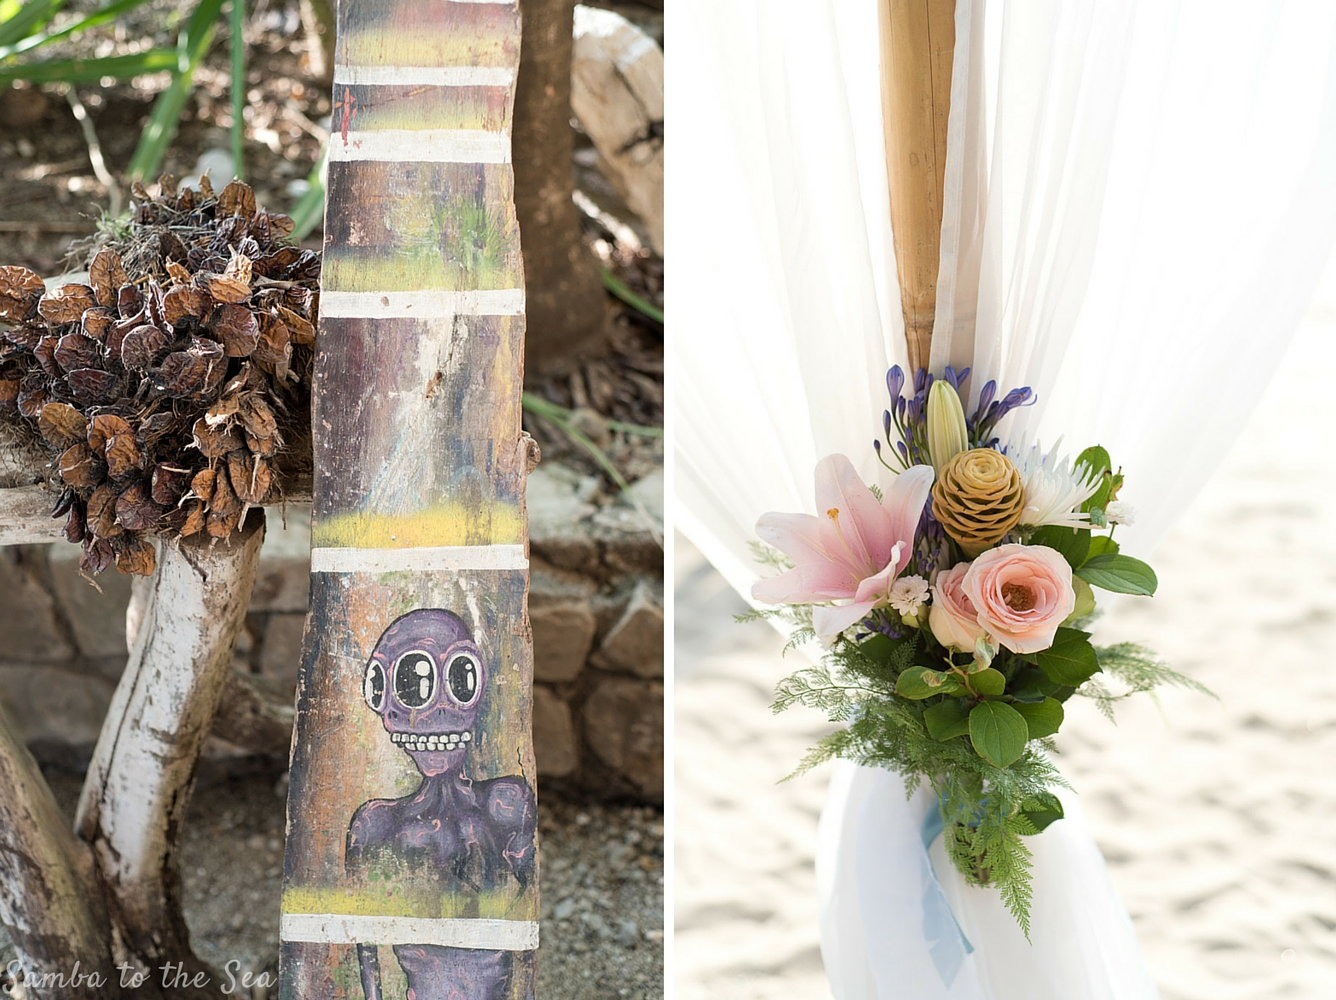 Wedding detail by Weddings Nosara at La Luna Restaurant in Playa Pelada, Nosara, Costa Rica. Photographed by Kristen M. Brown, Samba to the Sea Photography.